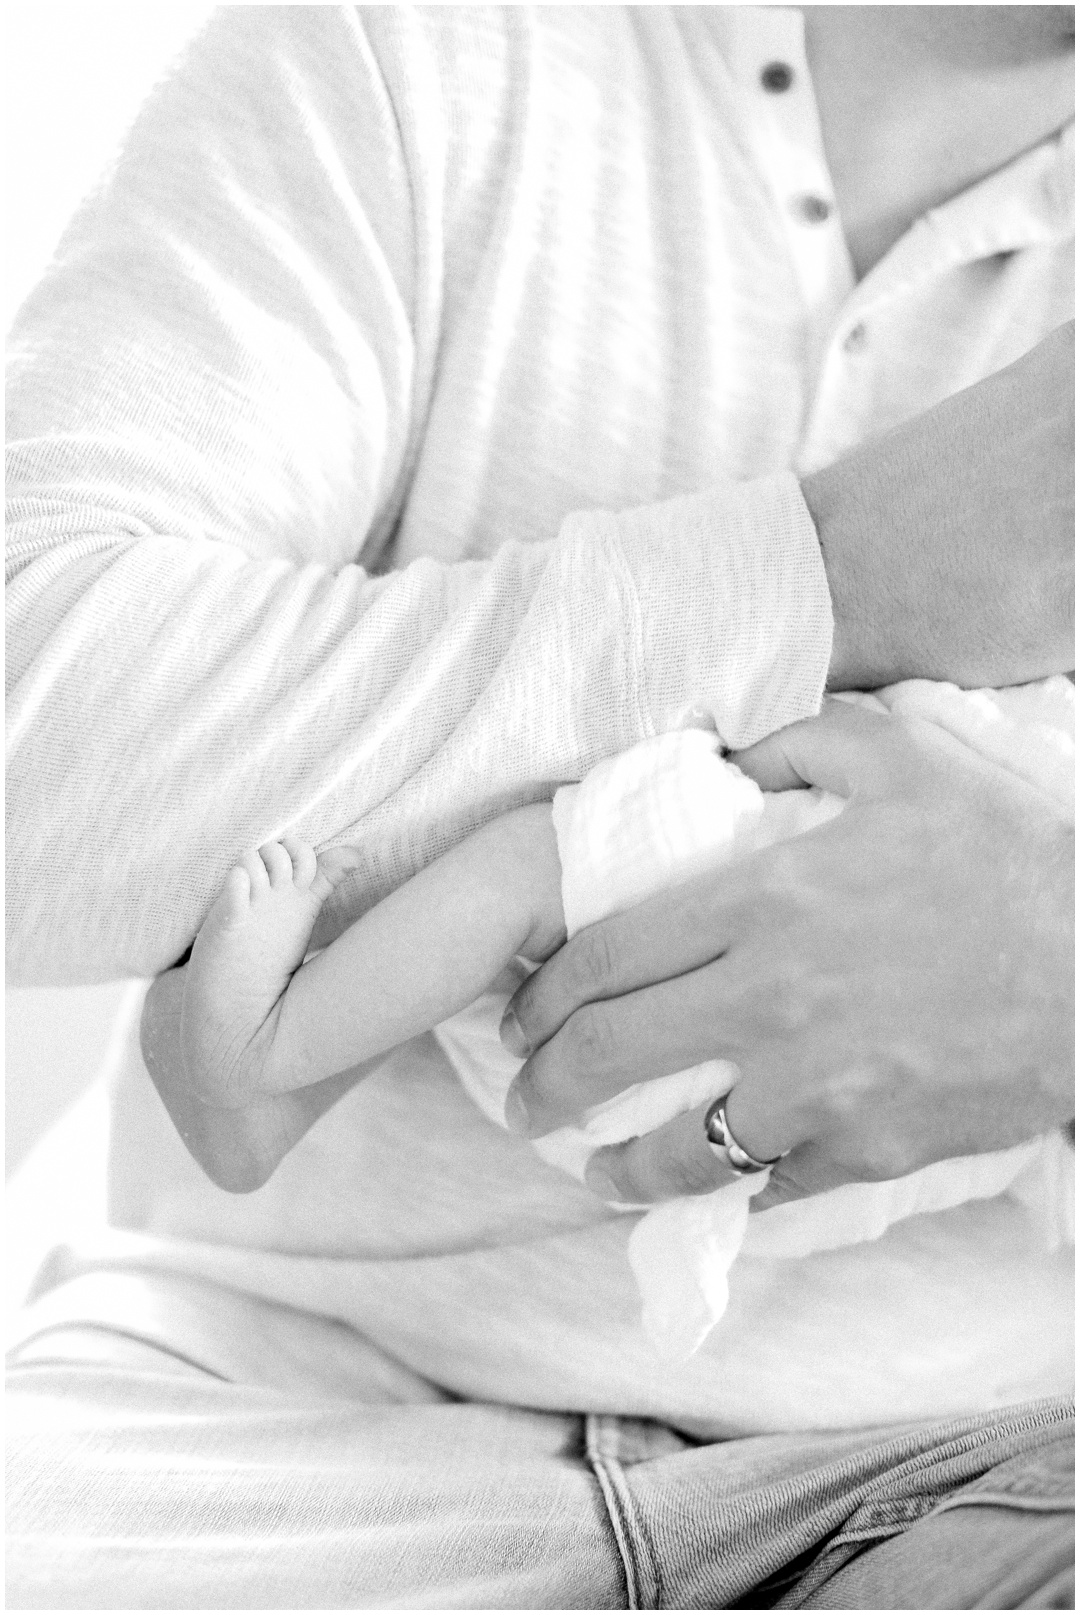 Newport_Beach_Newborn_Light_Airy_Natural_Photographer_Newport_Beach_Photographer_Orange_County_Family_Photographer_Cori_Kleckner_Photography_Huntington_Beach_Photographer_Family_OC_Newborn_Megan_Bradley_Schueneman_Charlie_Schueneman_Dean__3602.jpg